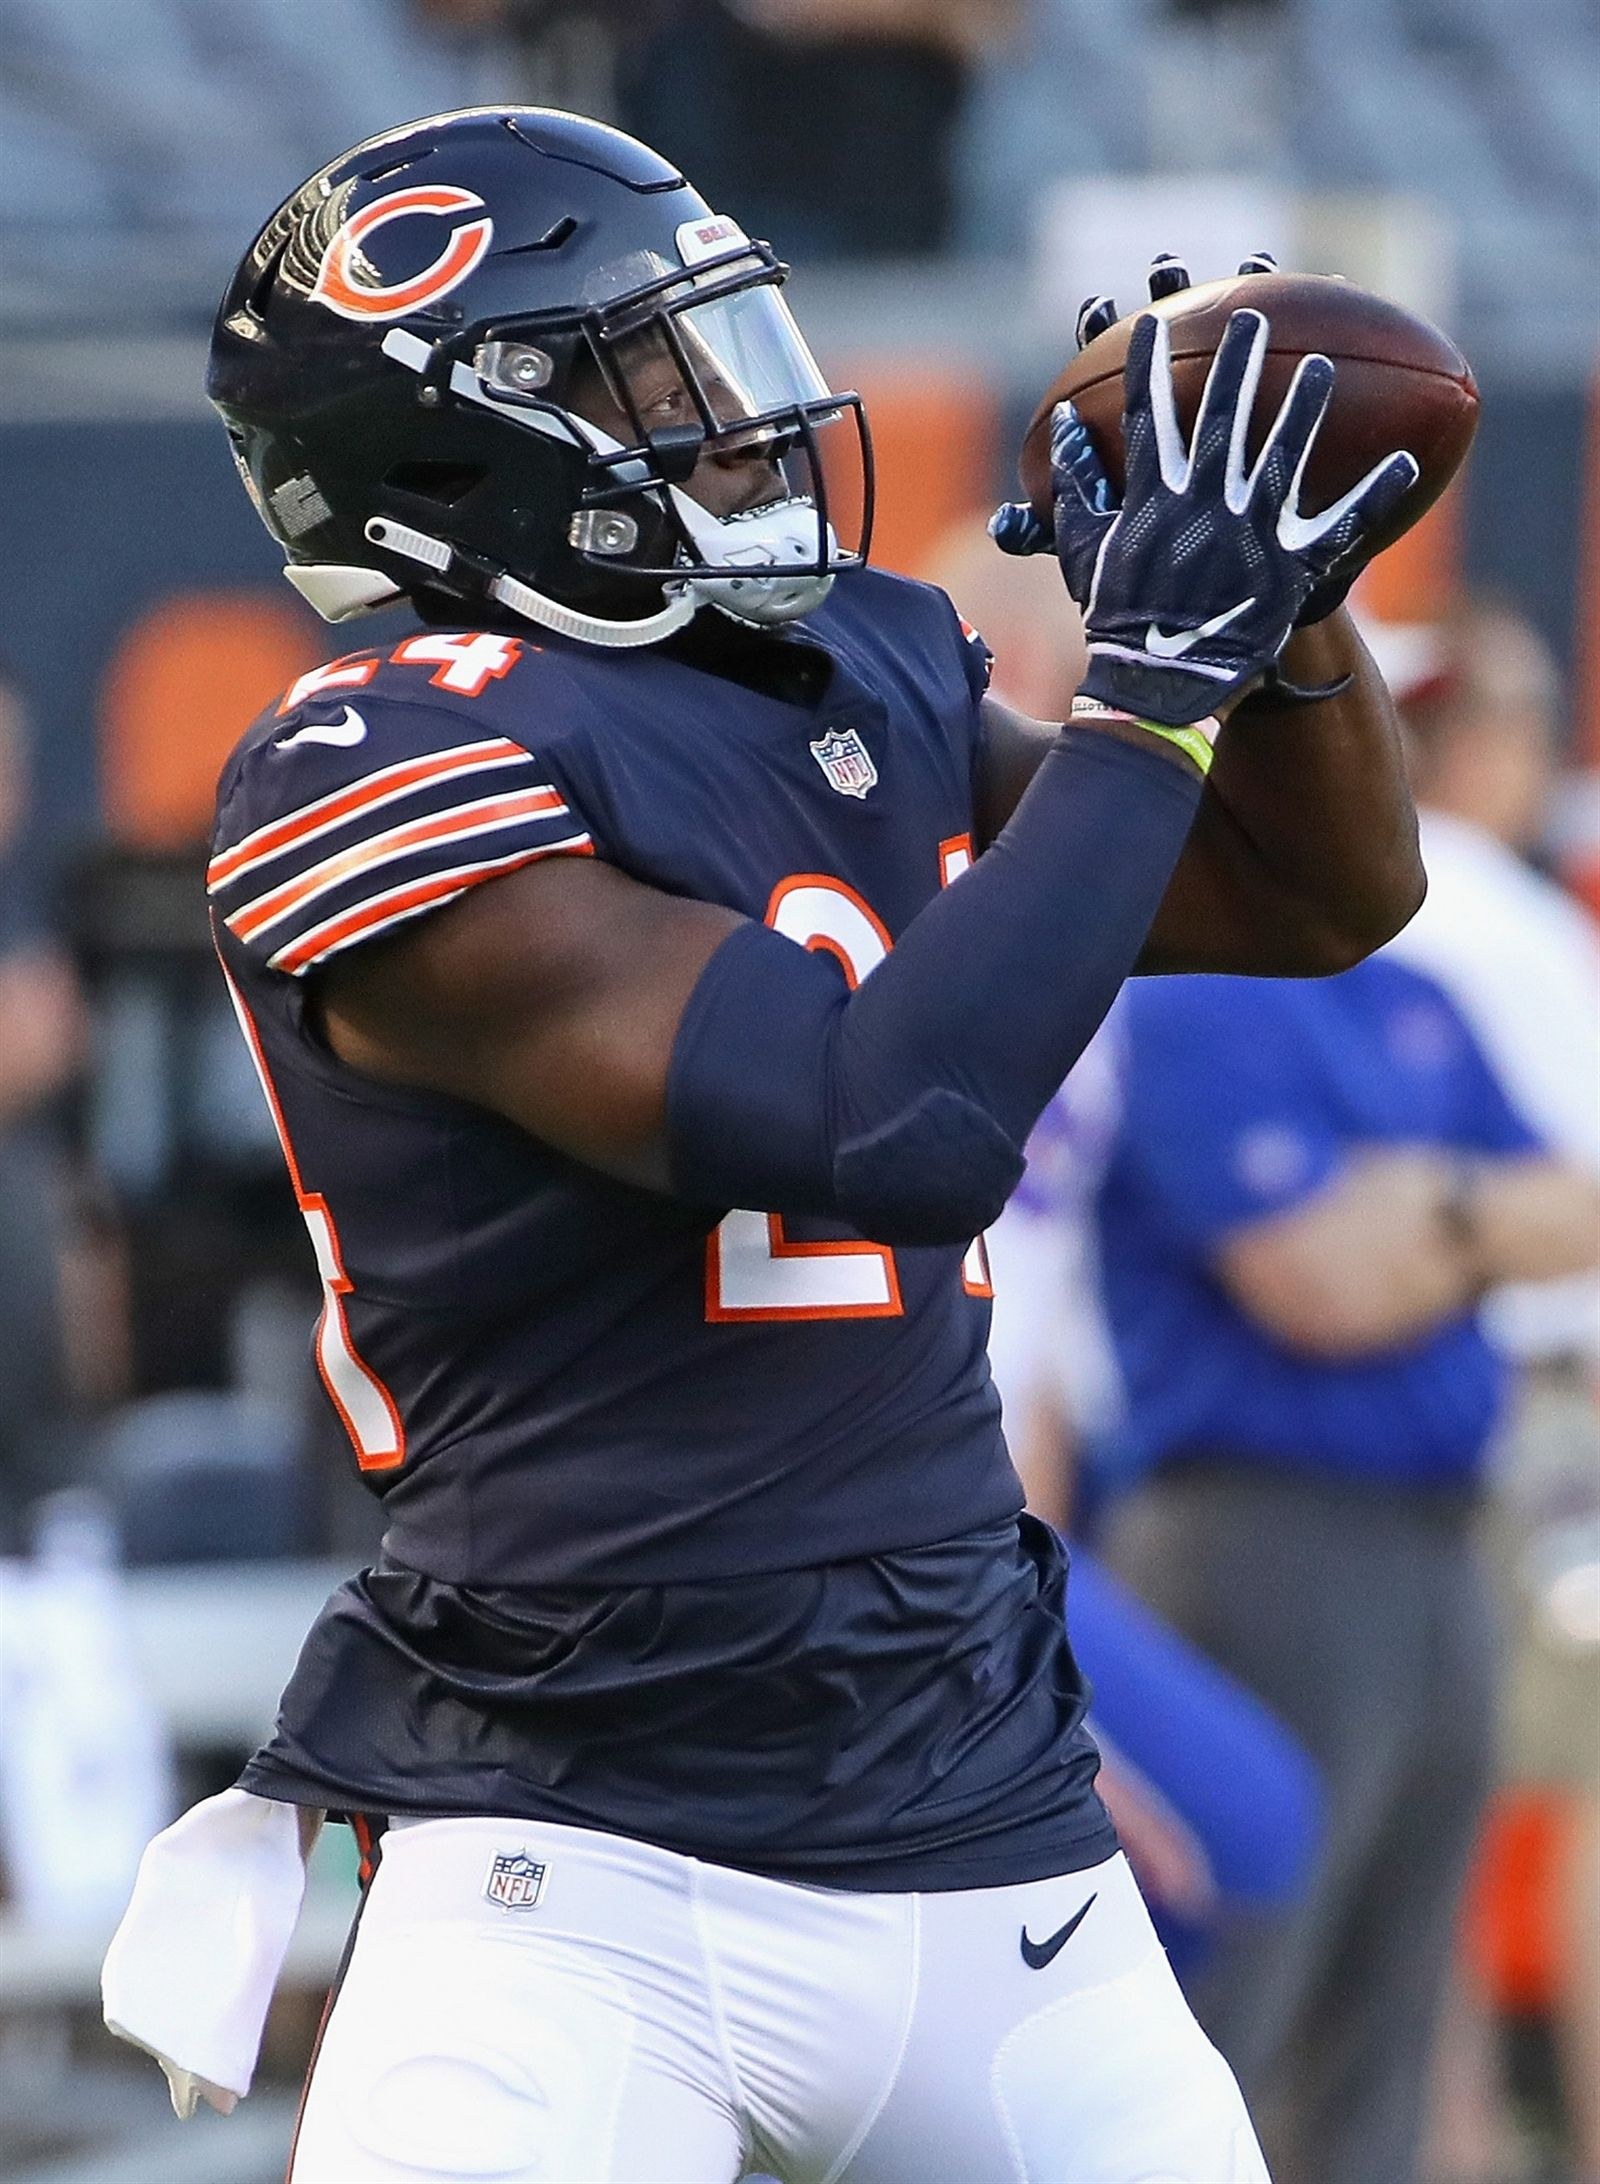 Jordan Howard of the Chicago Bears participates in warm-ups before a preseason game against the Buffalo Bills at Soldier Field on August 30, 2018 in Chicago, Illinois.